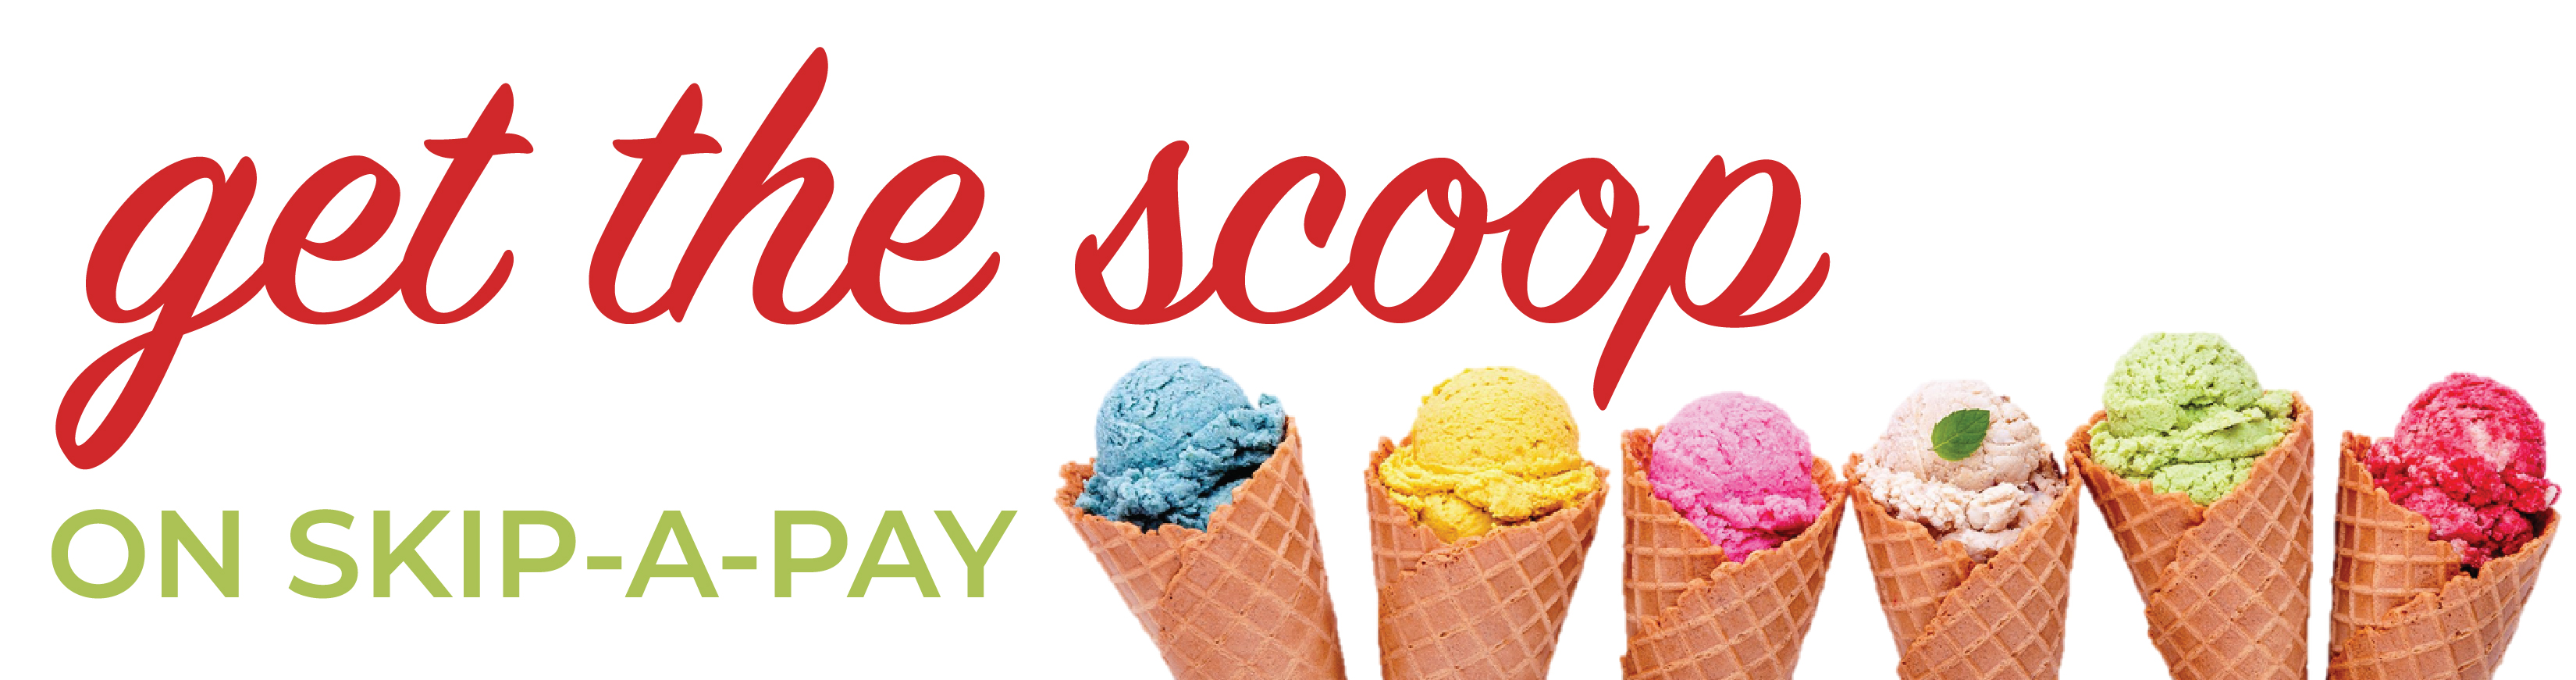 Get the scoop image